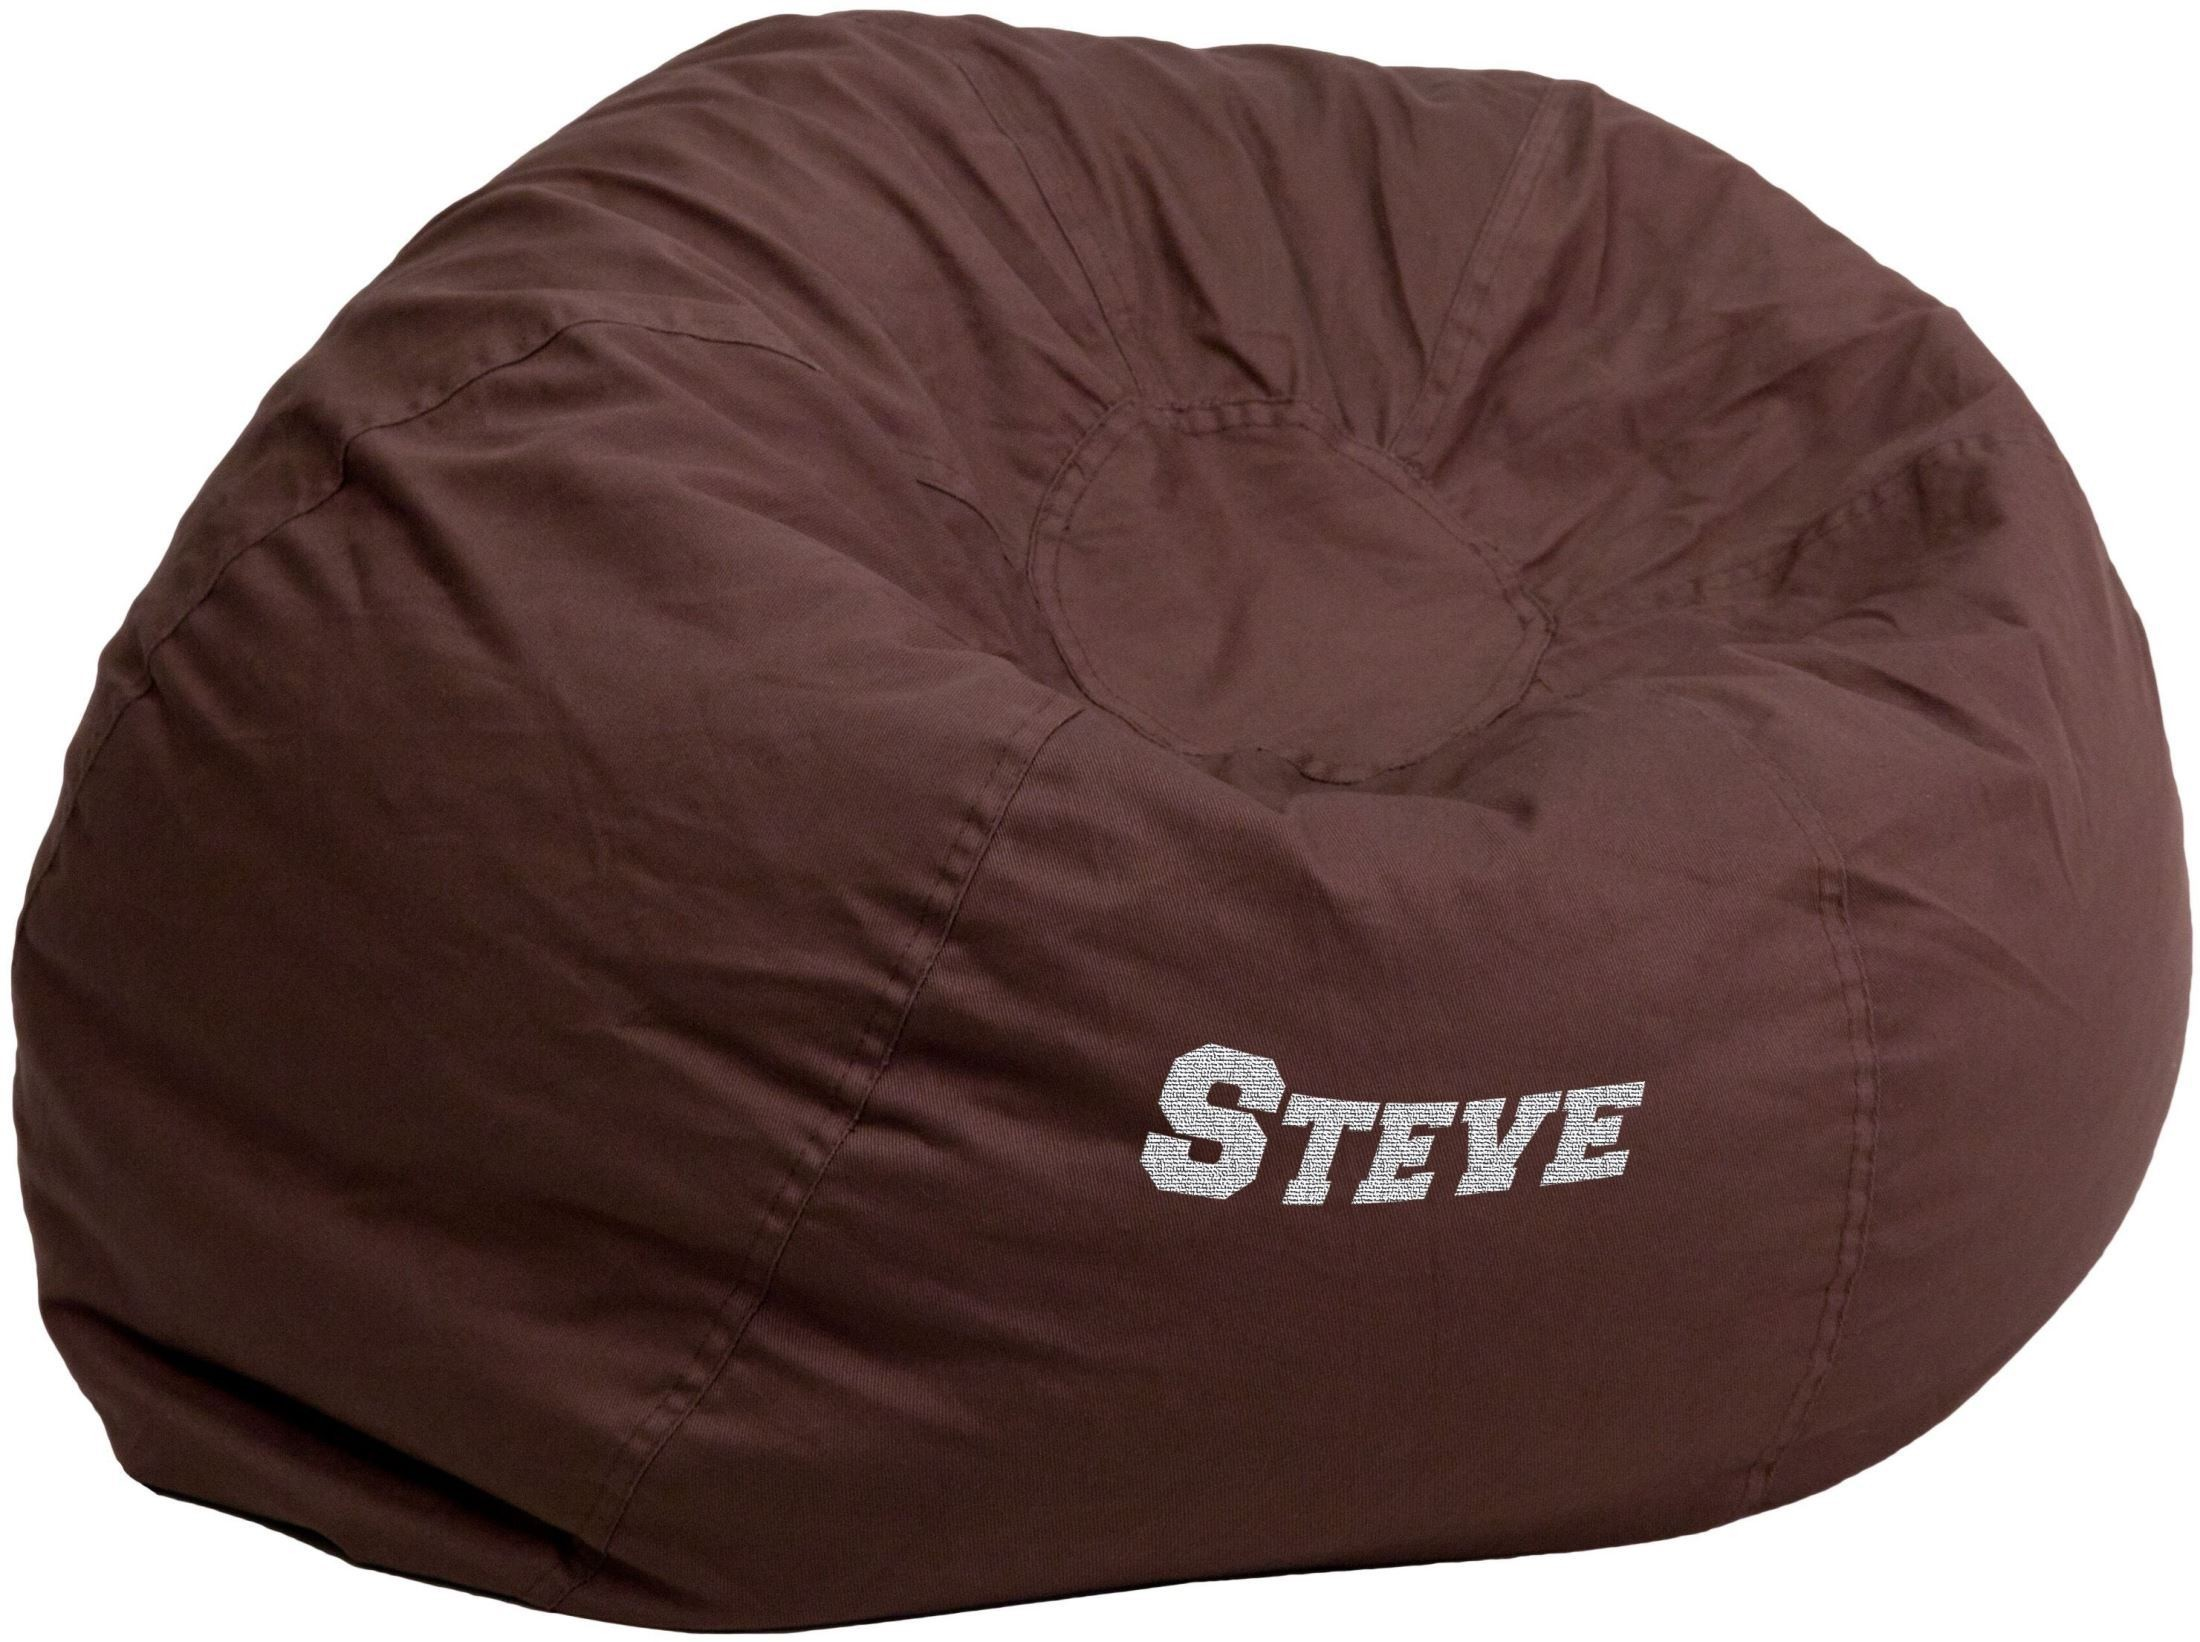 Brown Bean Bag Chair Personalized Oversized Solid Brown Bean Bag Chair With